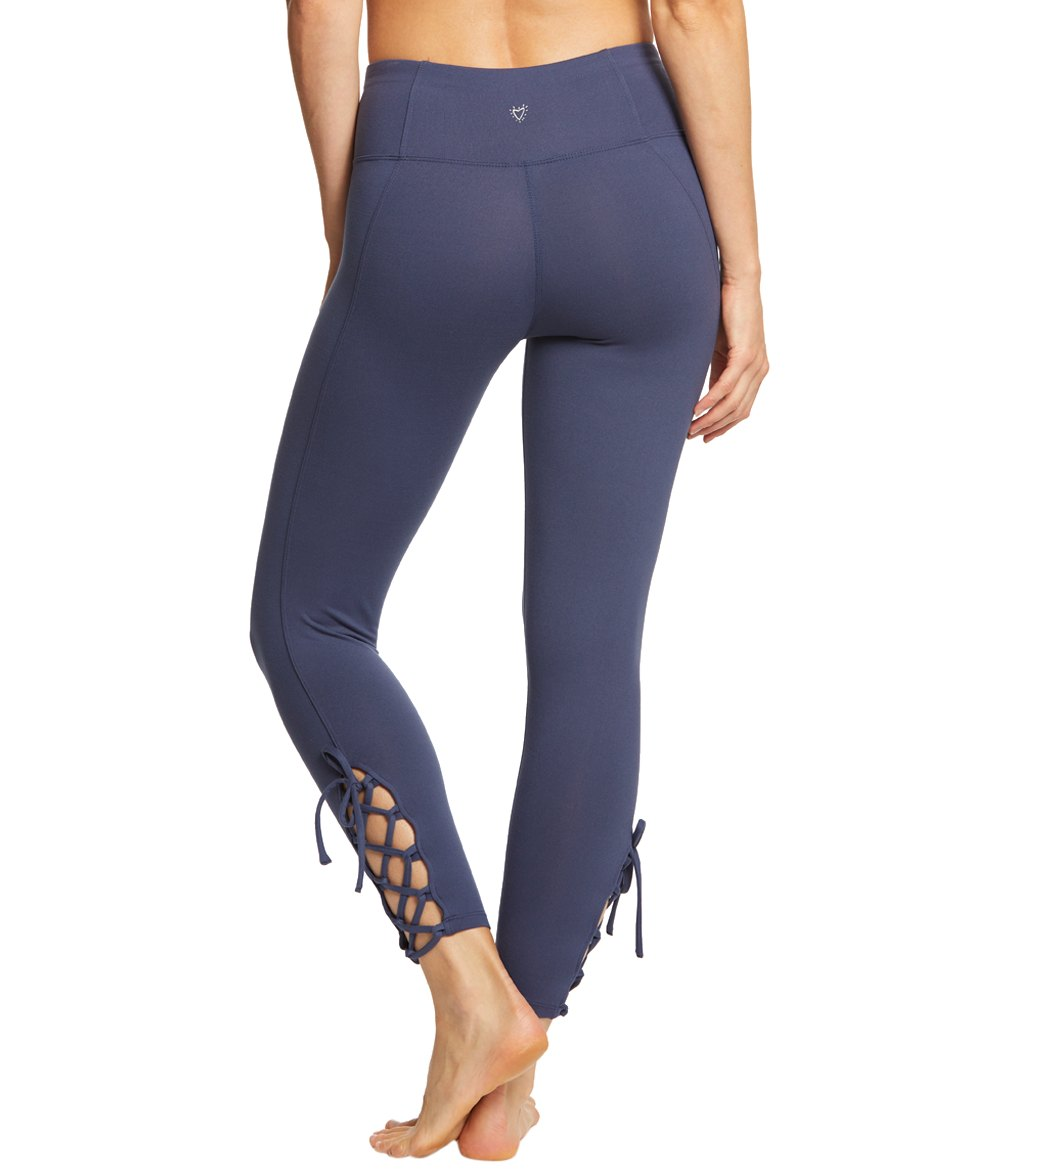 ecfc46dce55a4 Betsey Johnson Performance Lace Up 7/8 Yoga Leggings at YogaOutlet ...